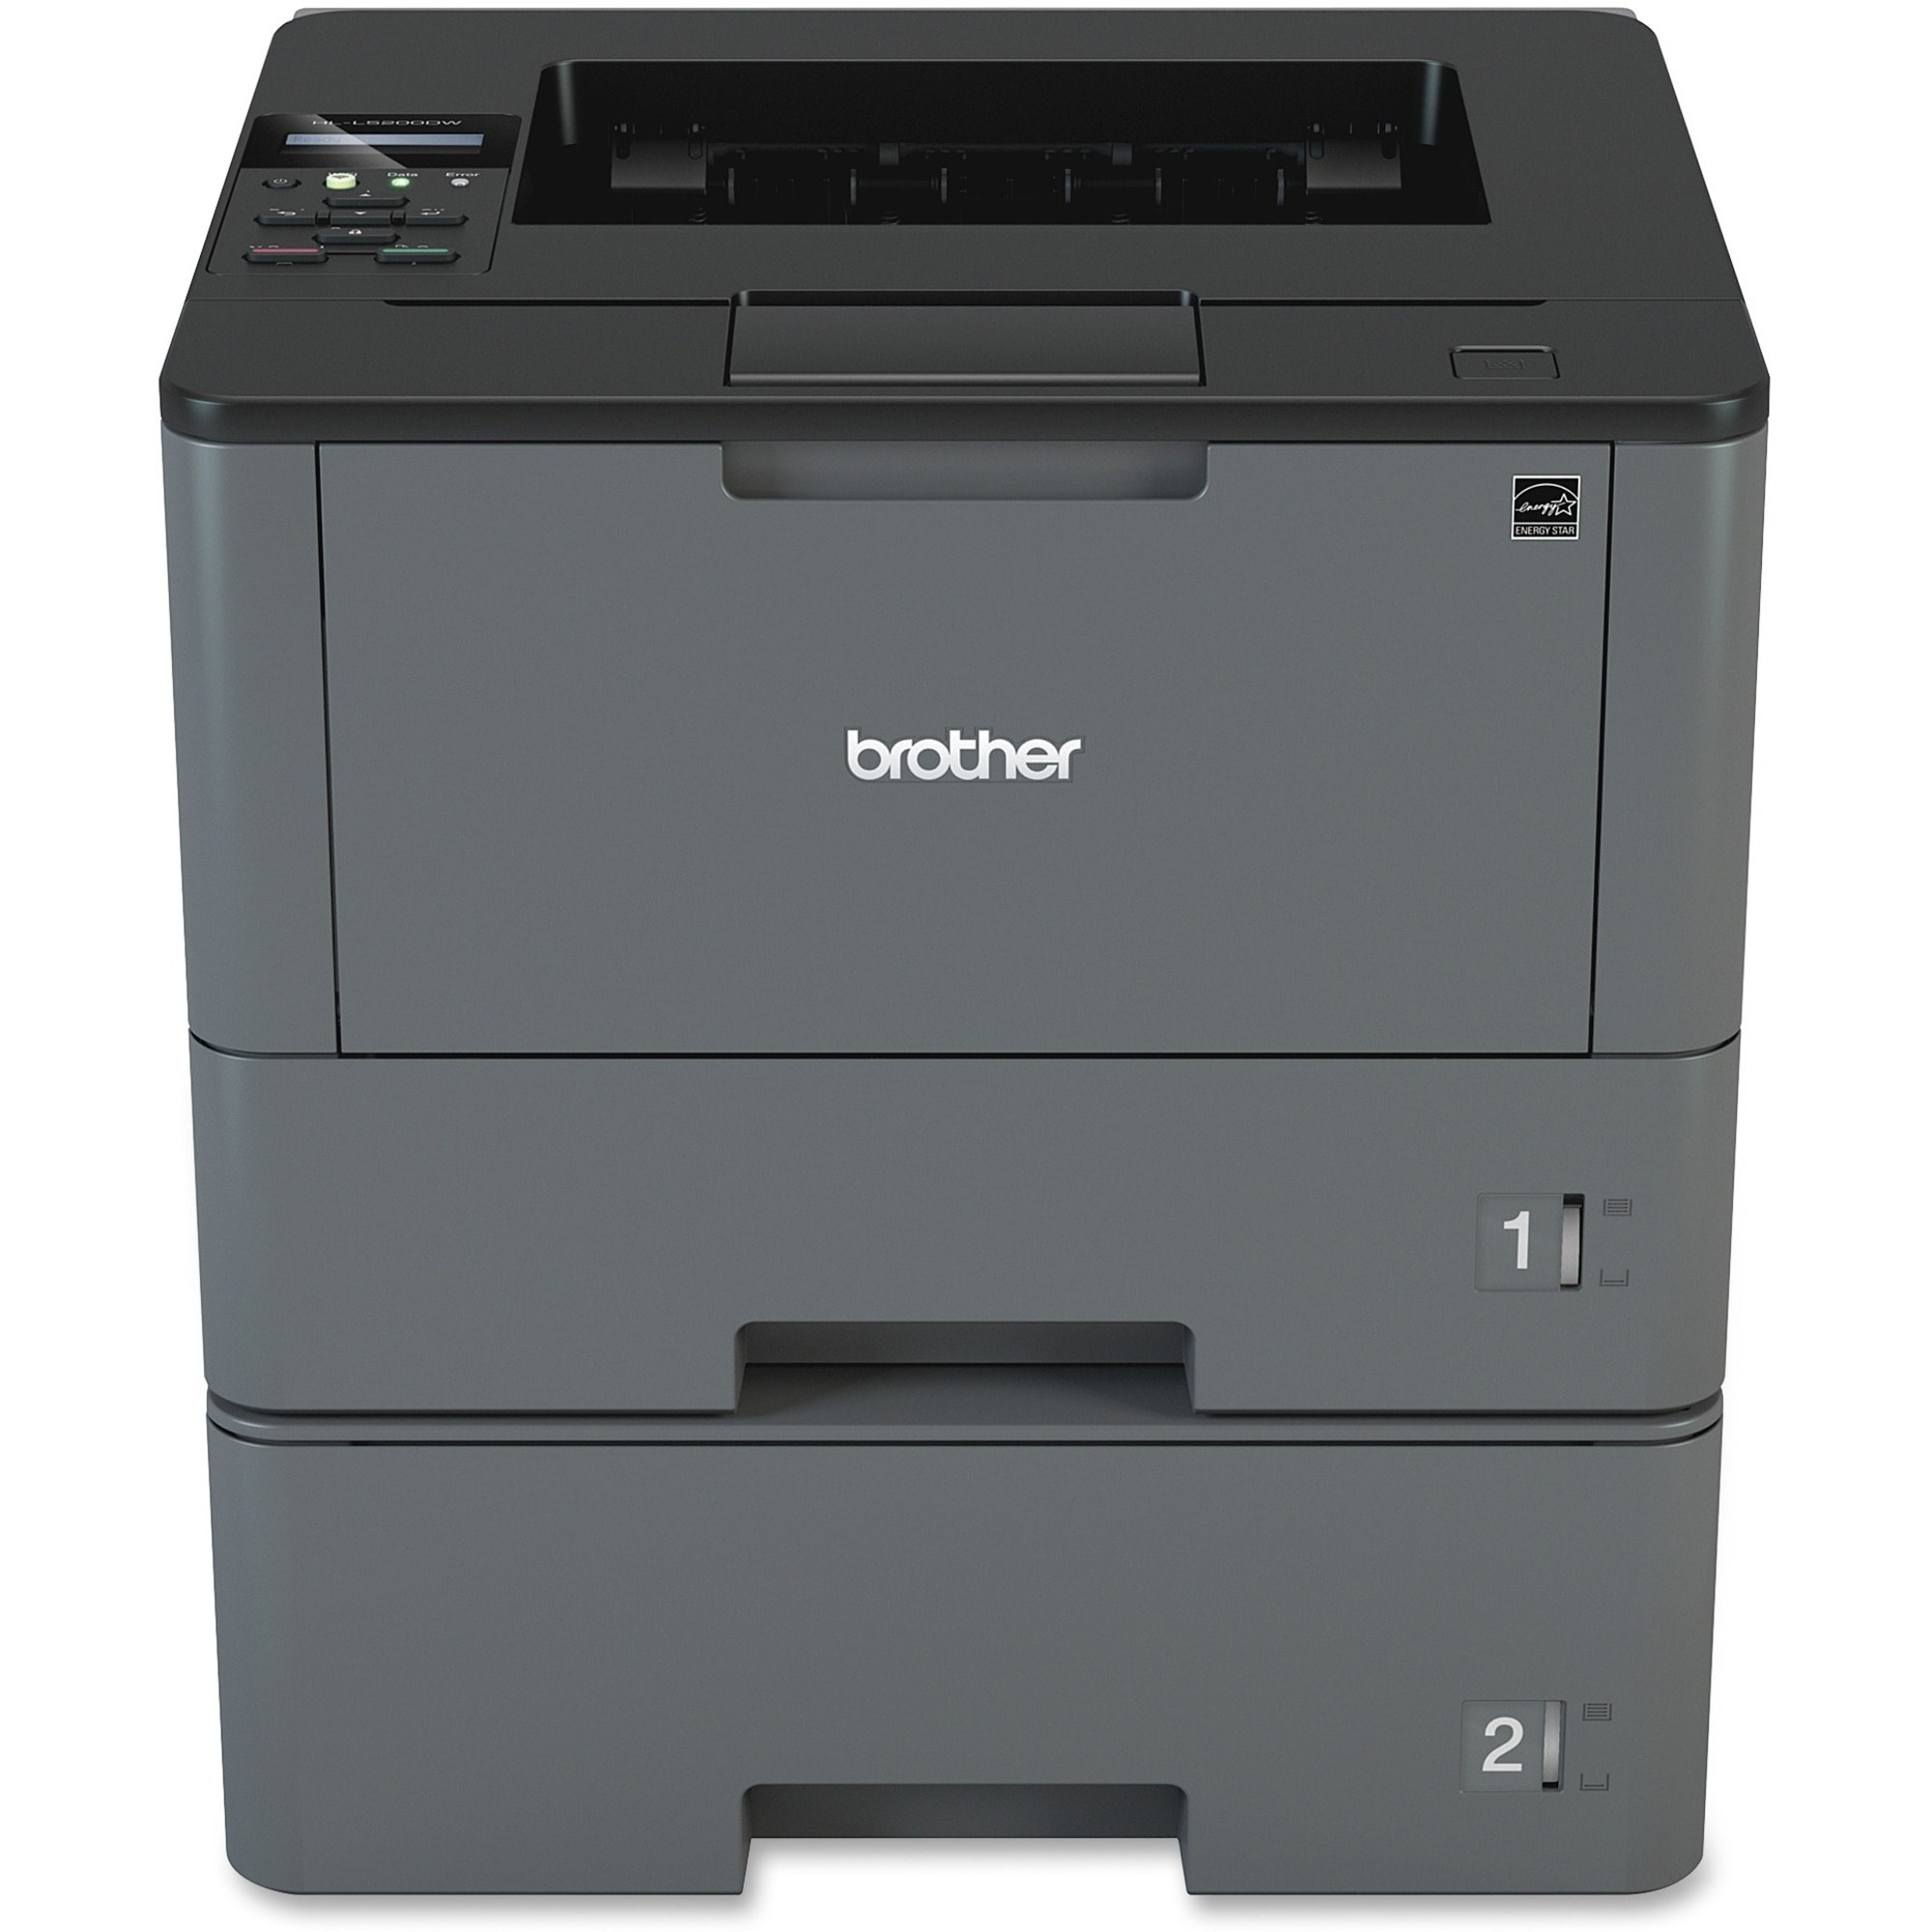 Brother Business Laser Printer HL-L5200DWT - Monochrome - Duplex Prin